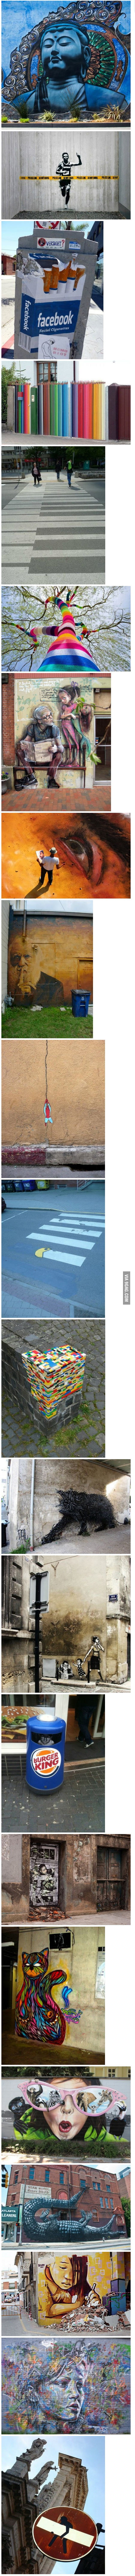 Just some awesome street art